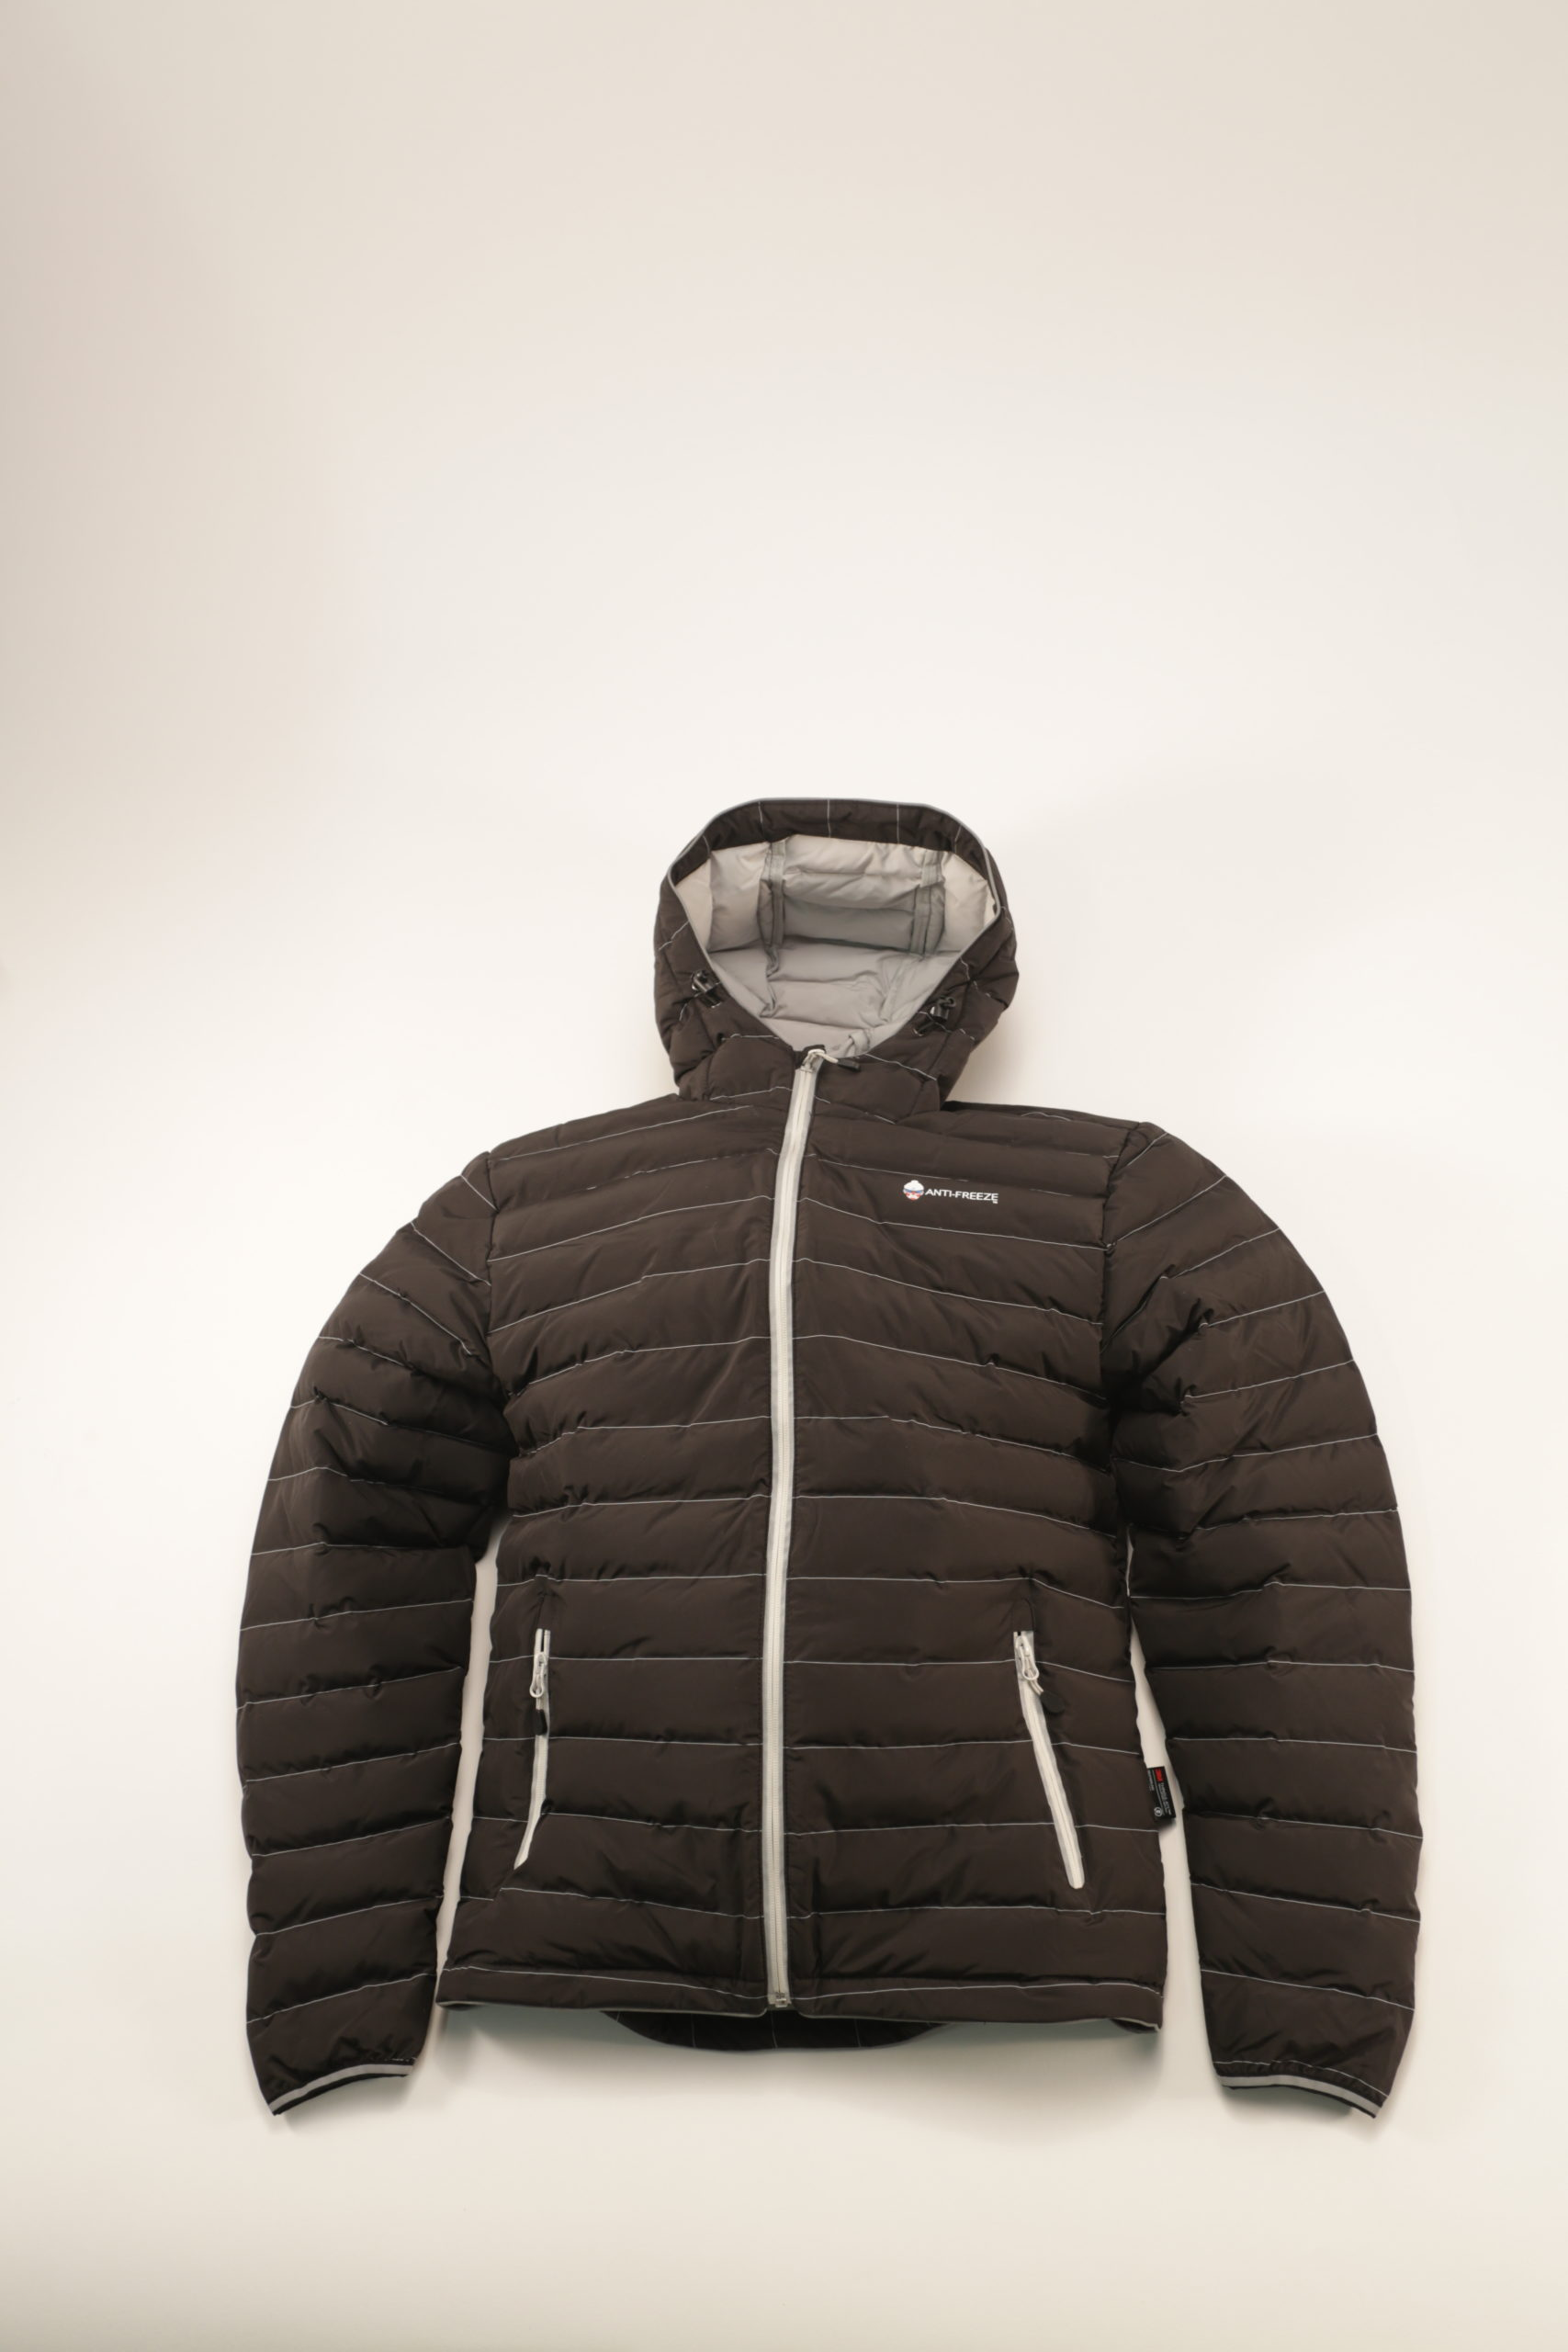 Anti - Freeze Super puff 2 Jacket: Retail Value $280.00